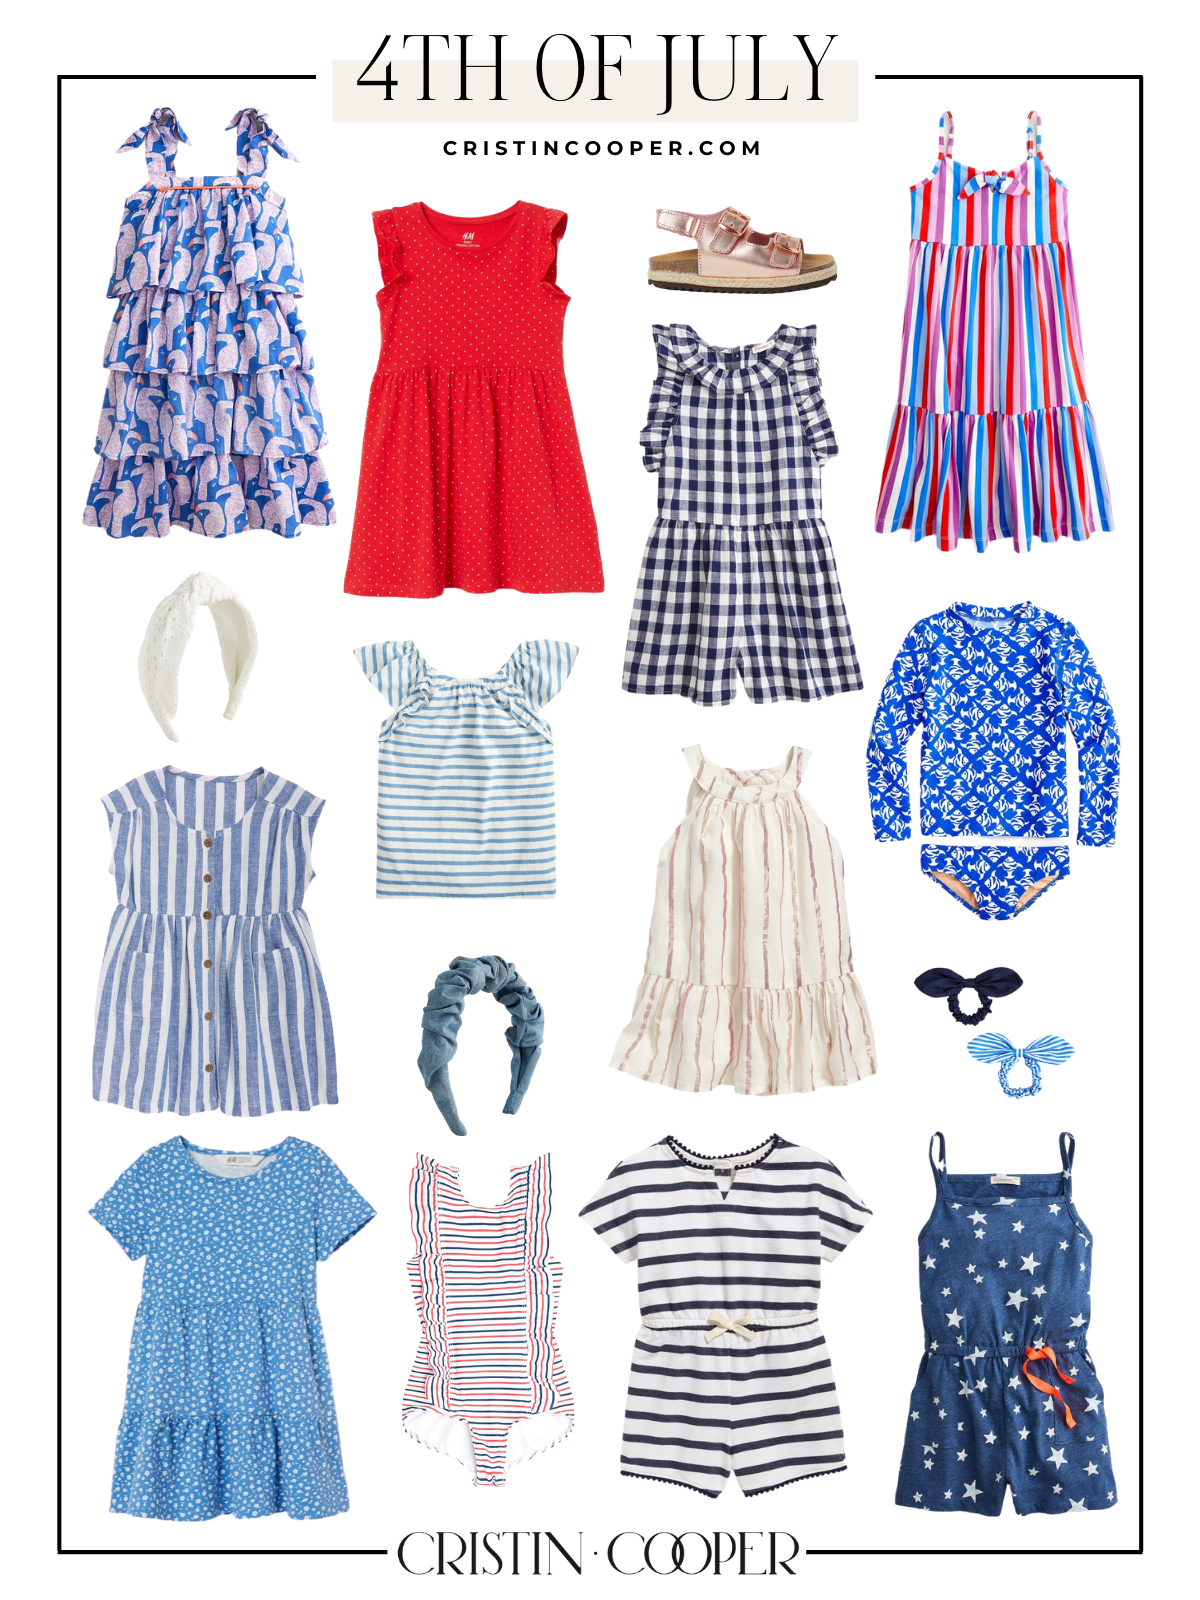 Kids 4th of July outfit ideas.